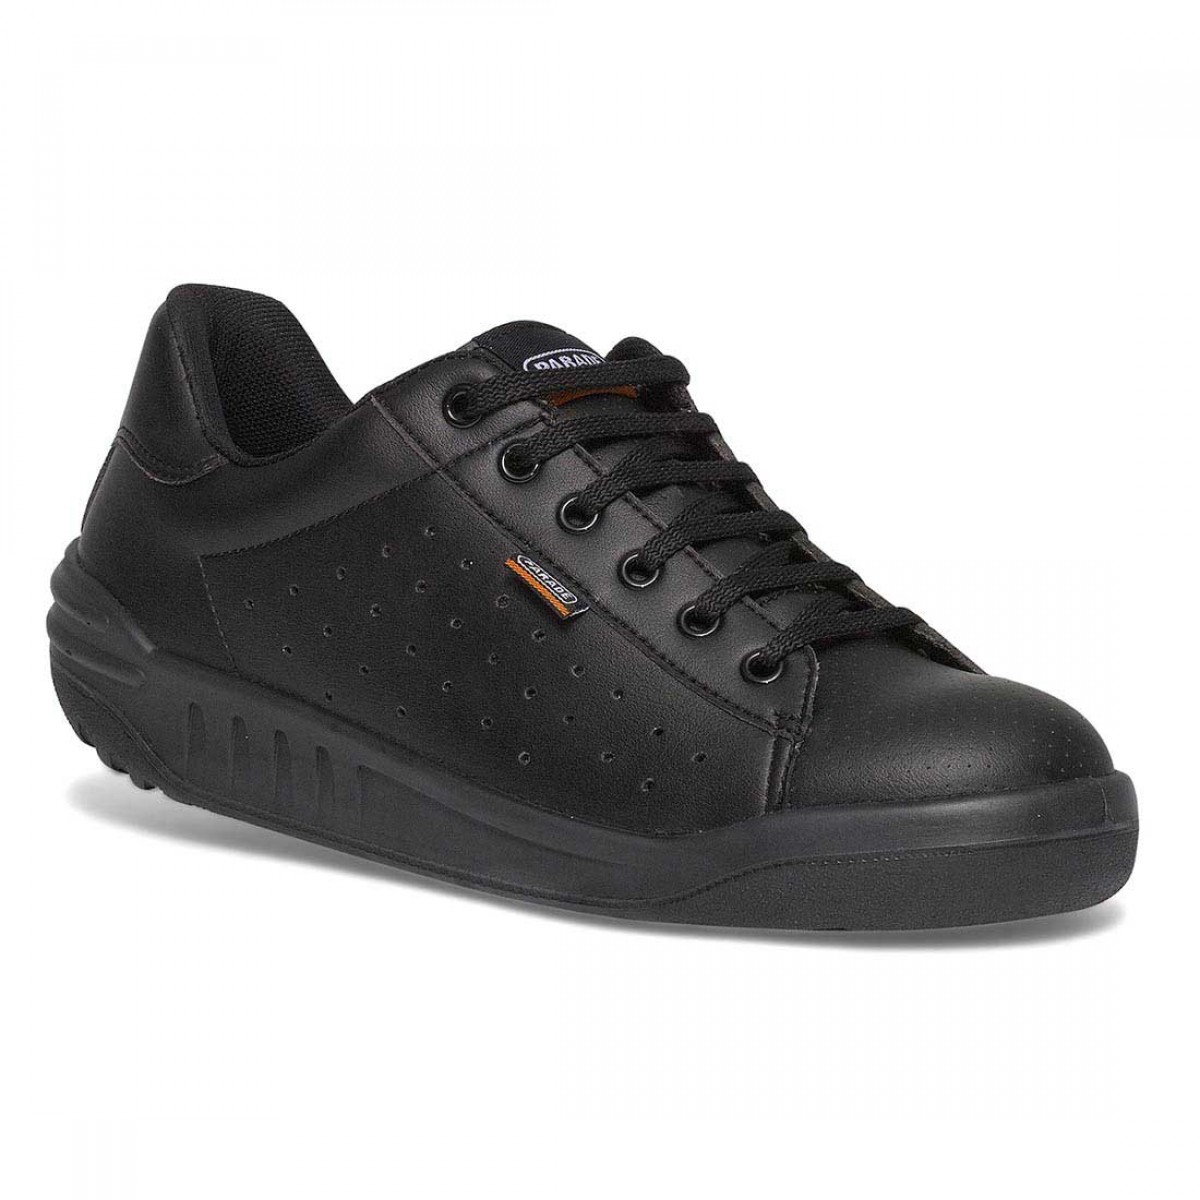 Timberland Casual Shoes Black